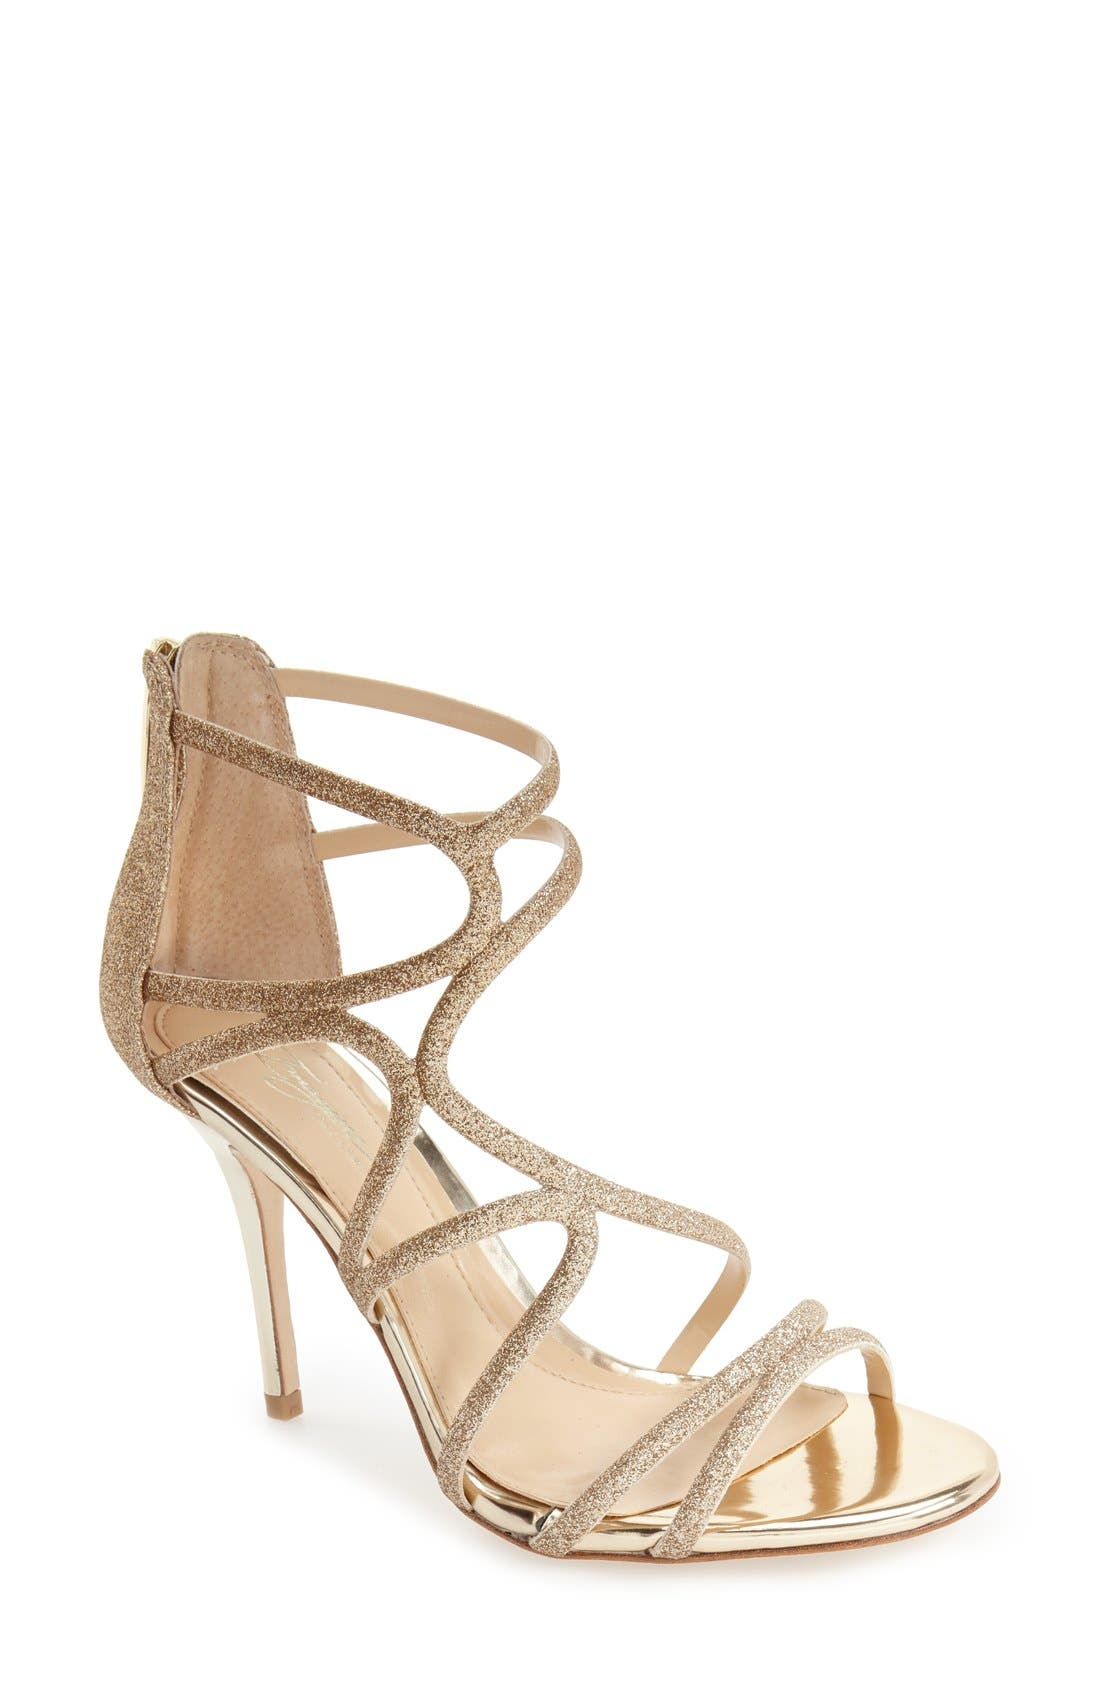 'Ranee' Dress Sandal,                         Main,                         color, Champagne Leather